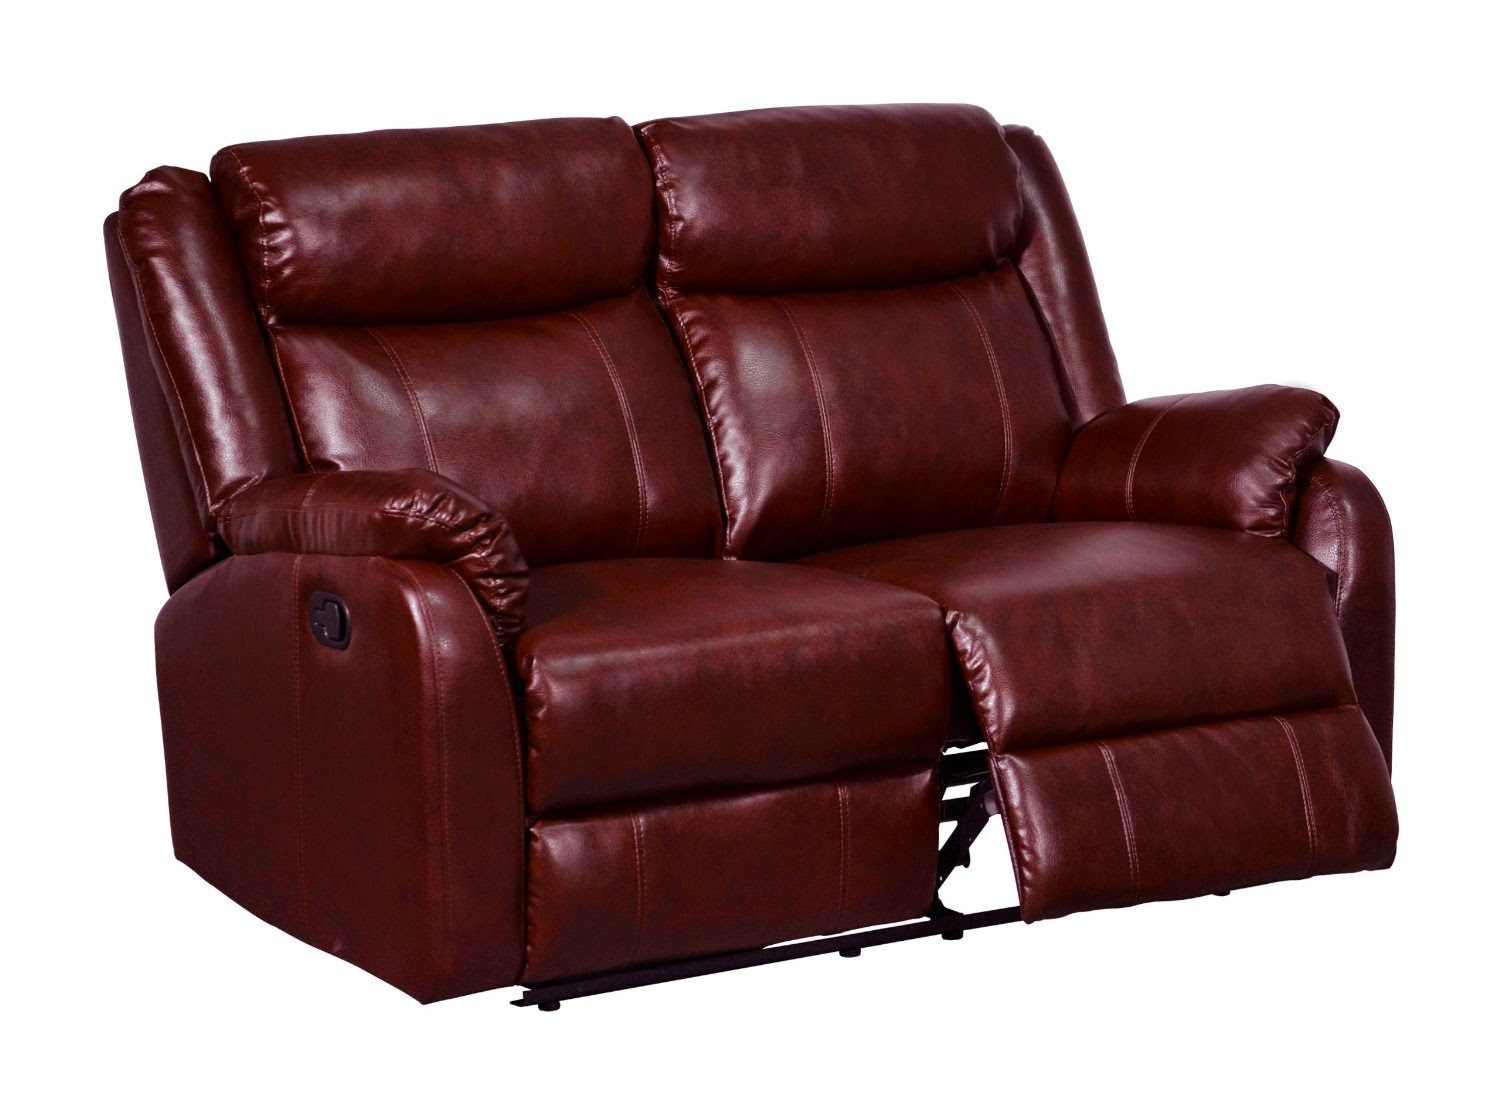 reclining sofa leather red blue walls cheap sofas sale 2 seater recliner